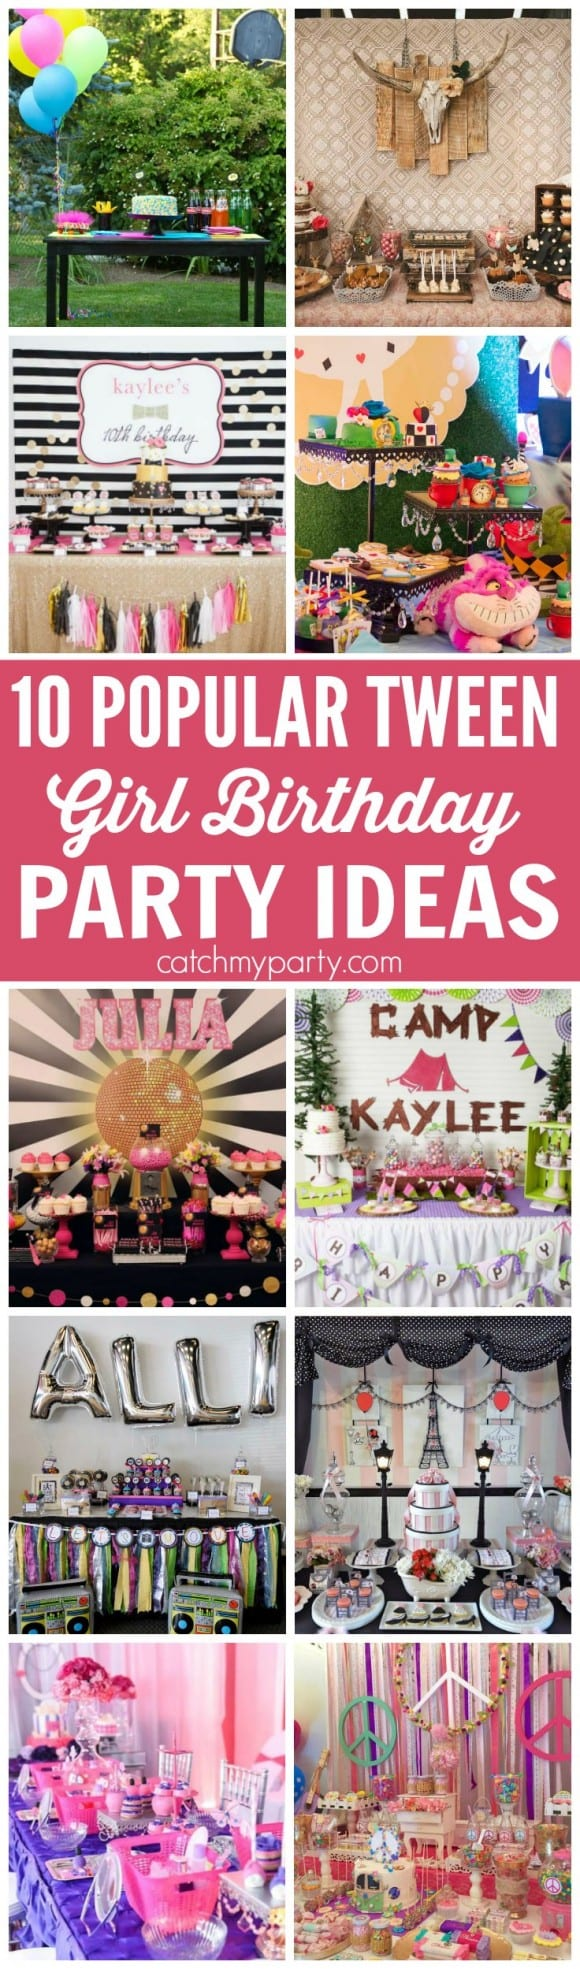 10 Most Popular Tween Girl Birthday Party Ideas | Catchmyparty.com